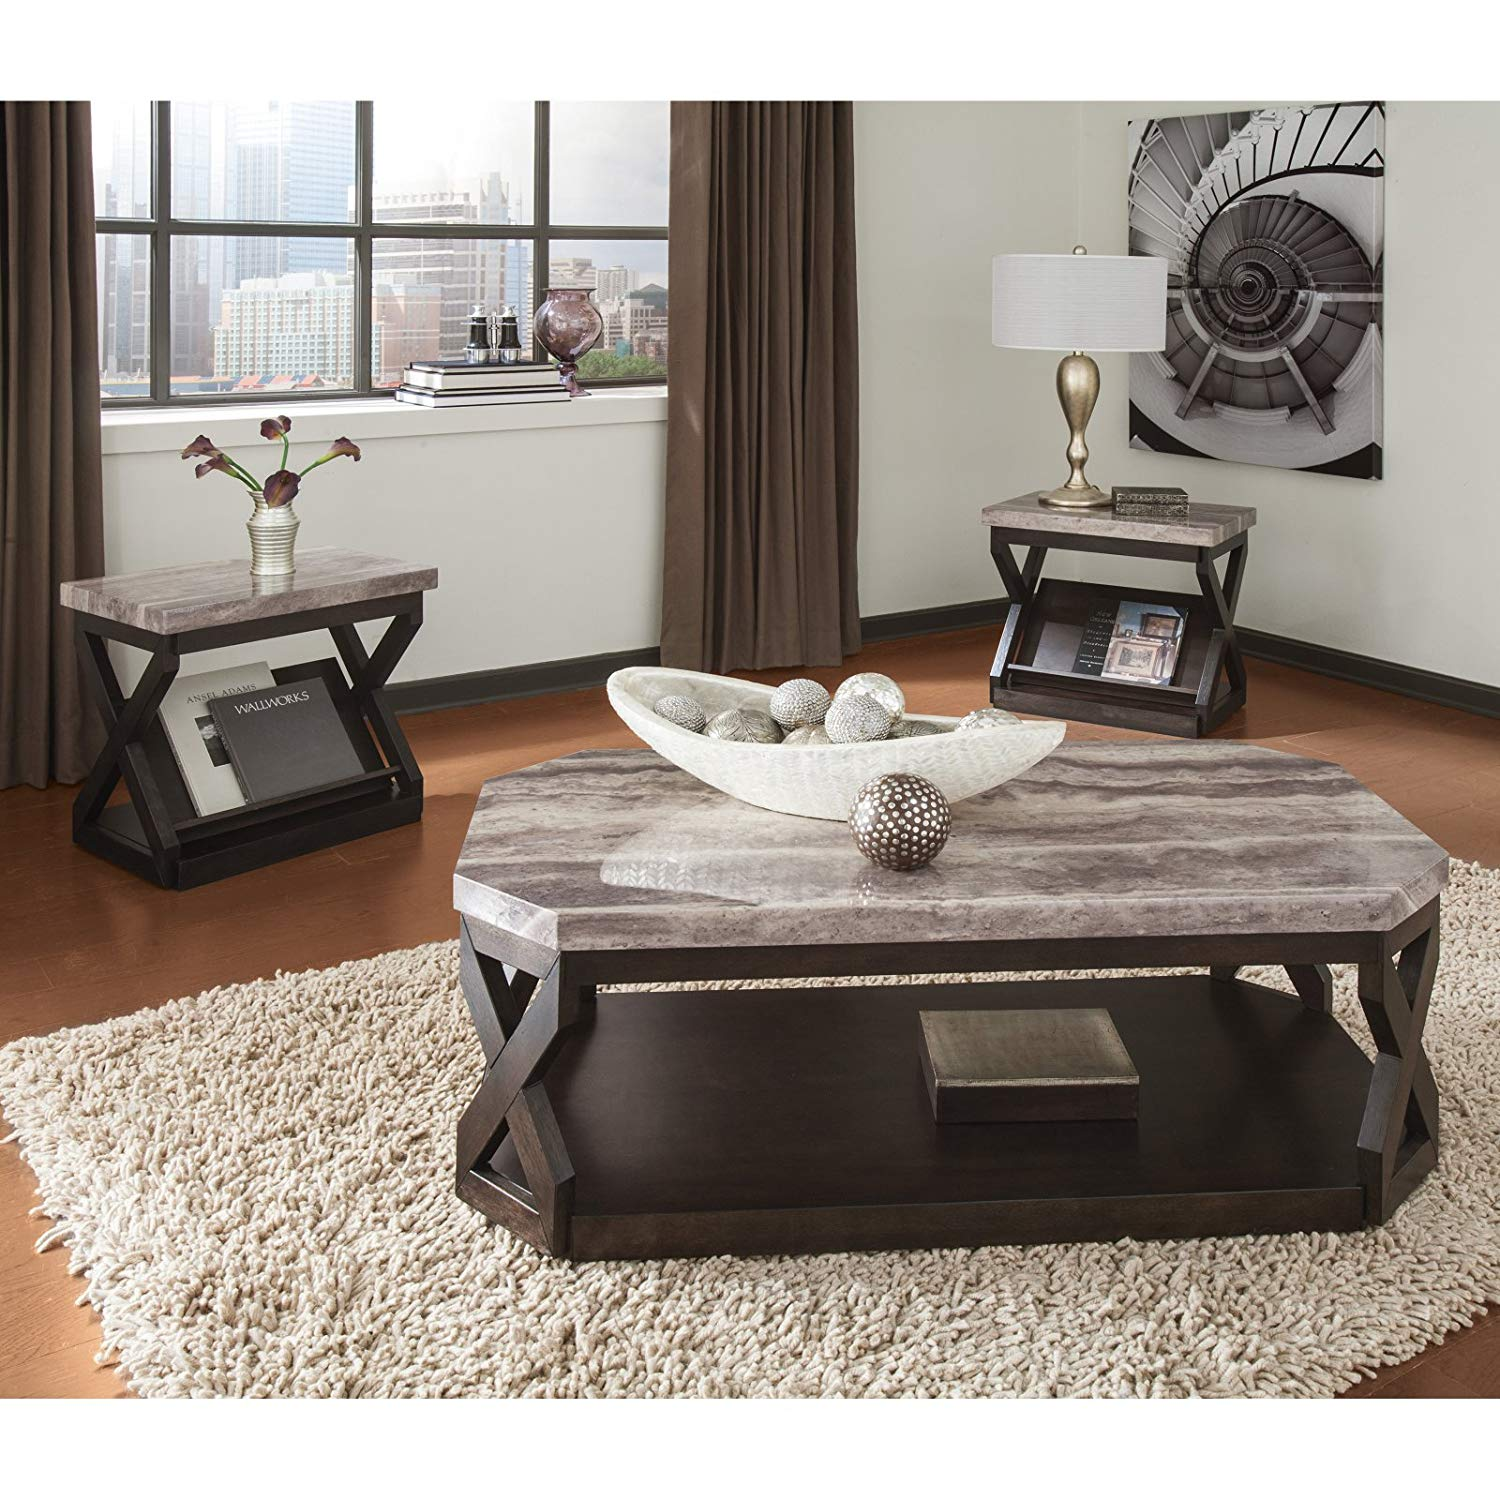 3 Piece Coffee Table Set, X-Shaped Frames, Bold, Contemporary Style, Gray Travertine Patterned Top, Glossy Polyurethane Finish, Hardwood Frames, Canted Corners, Generous Base Shelf + Expert Guide